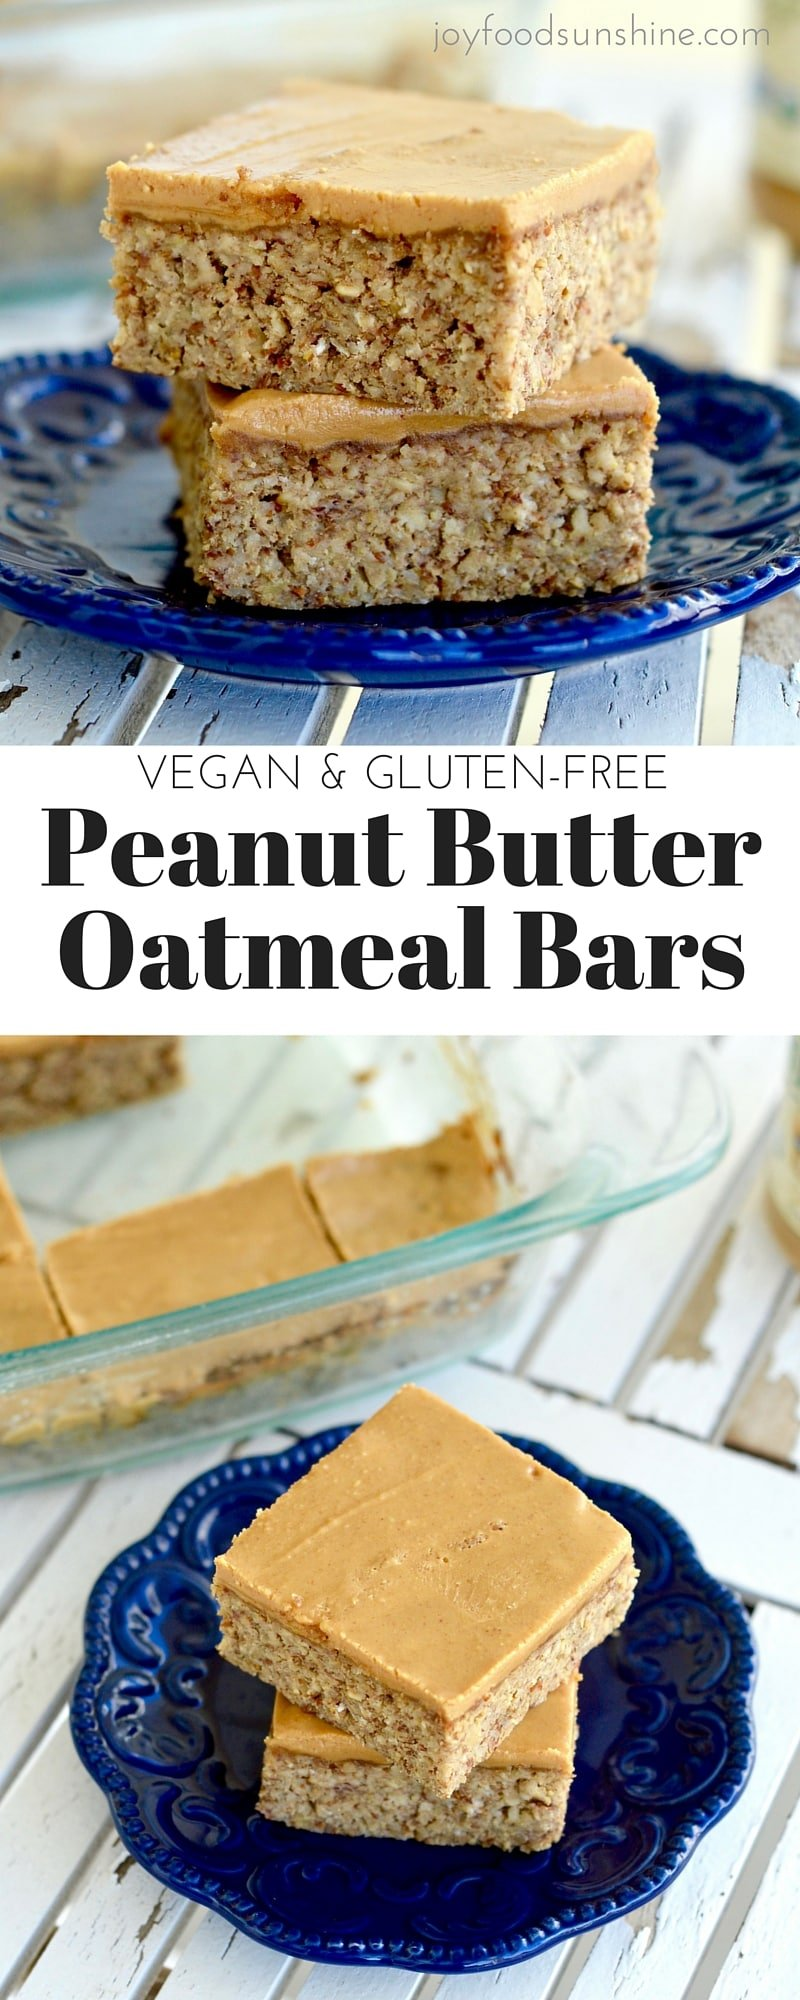 Peanut butter oatmeal breakfast bars. A filling breakfast rich in protein, fiber, and omega 3's ! They are gluten-free, dairy-free & vegan friendly!